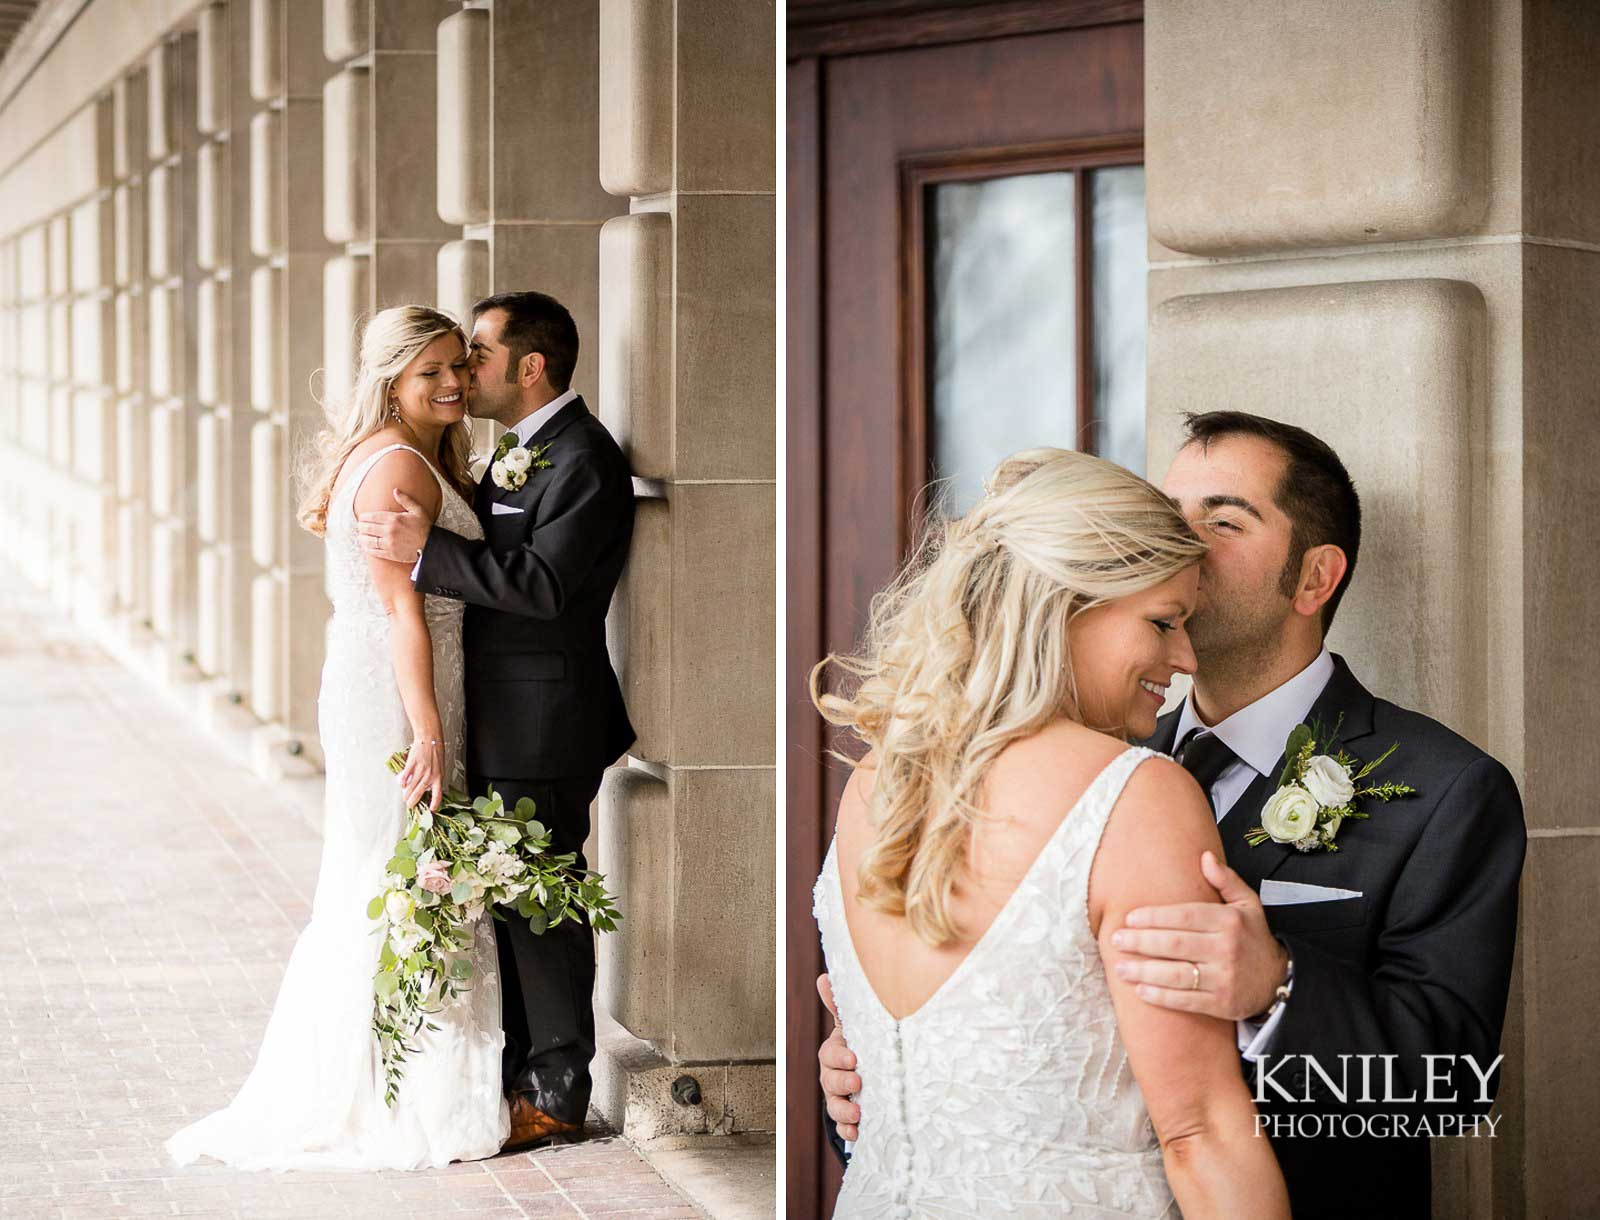 41-Max-of-Eastman-Wedding-and-Reception-Rochester-NY-Kniley-Photography.jpg